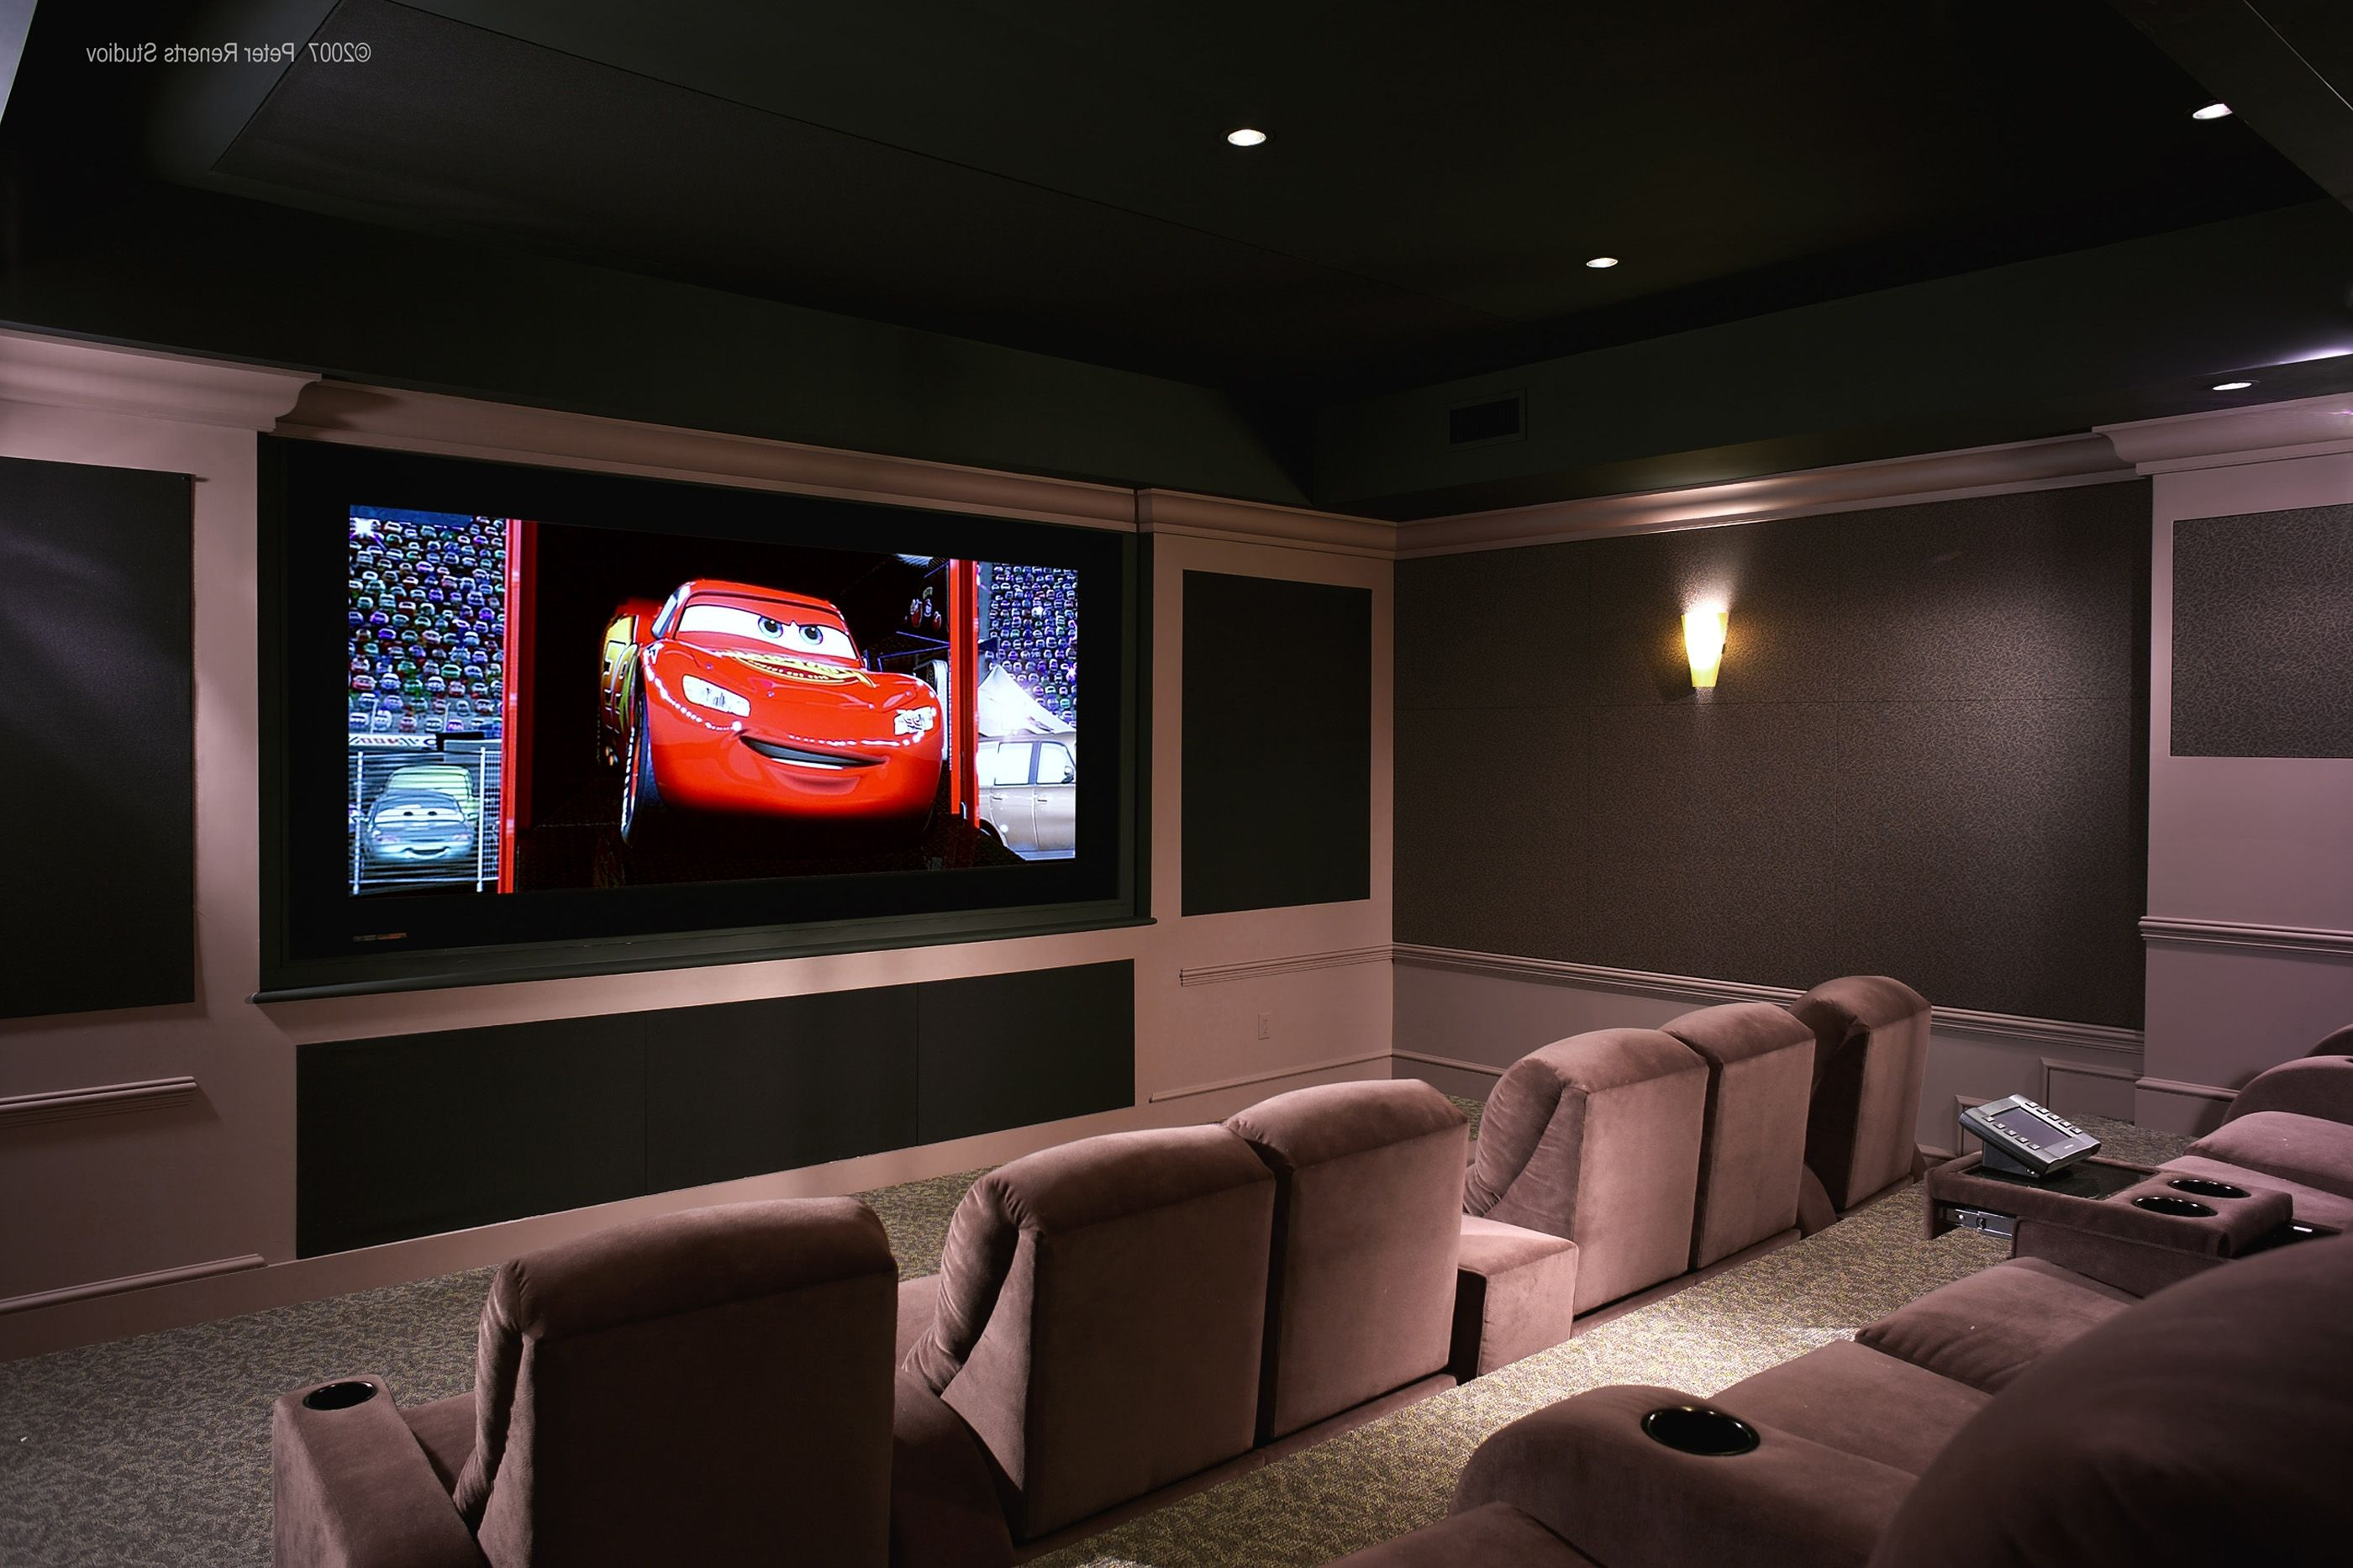 Home Theater Room Design Modern Home Design Small Home Cinema Room ,Backgrounds Idea